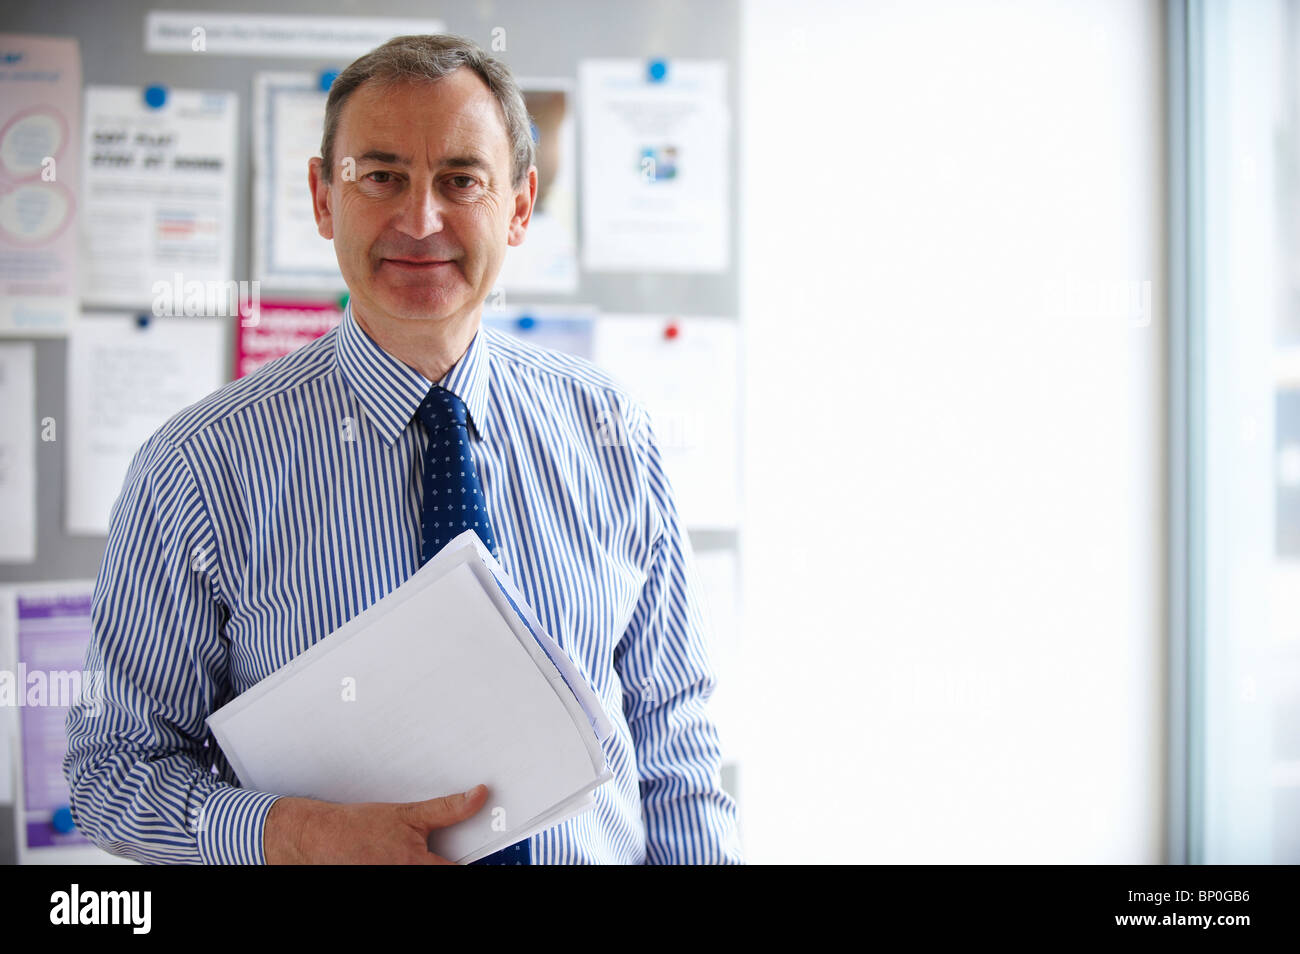 Femme Médecin consultant holding papers Photo Stock